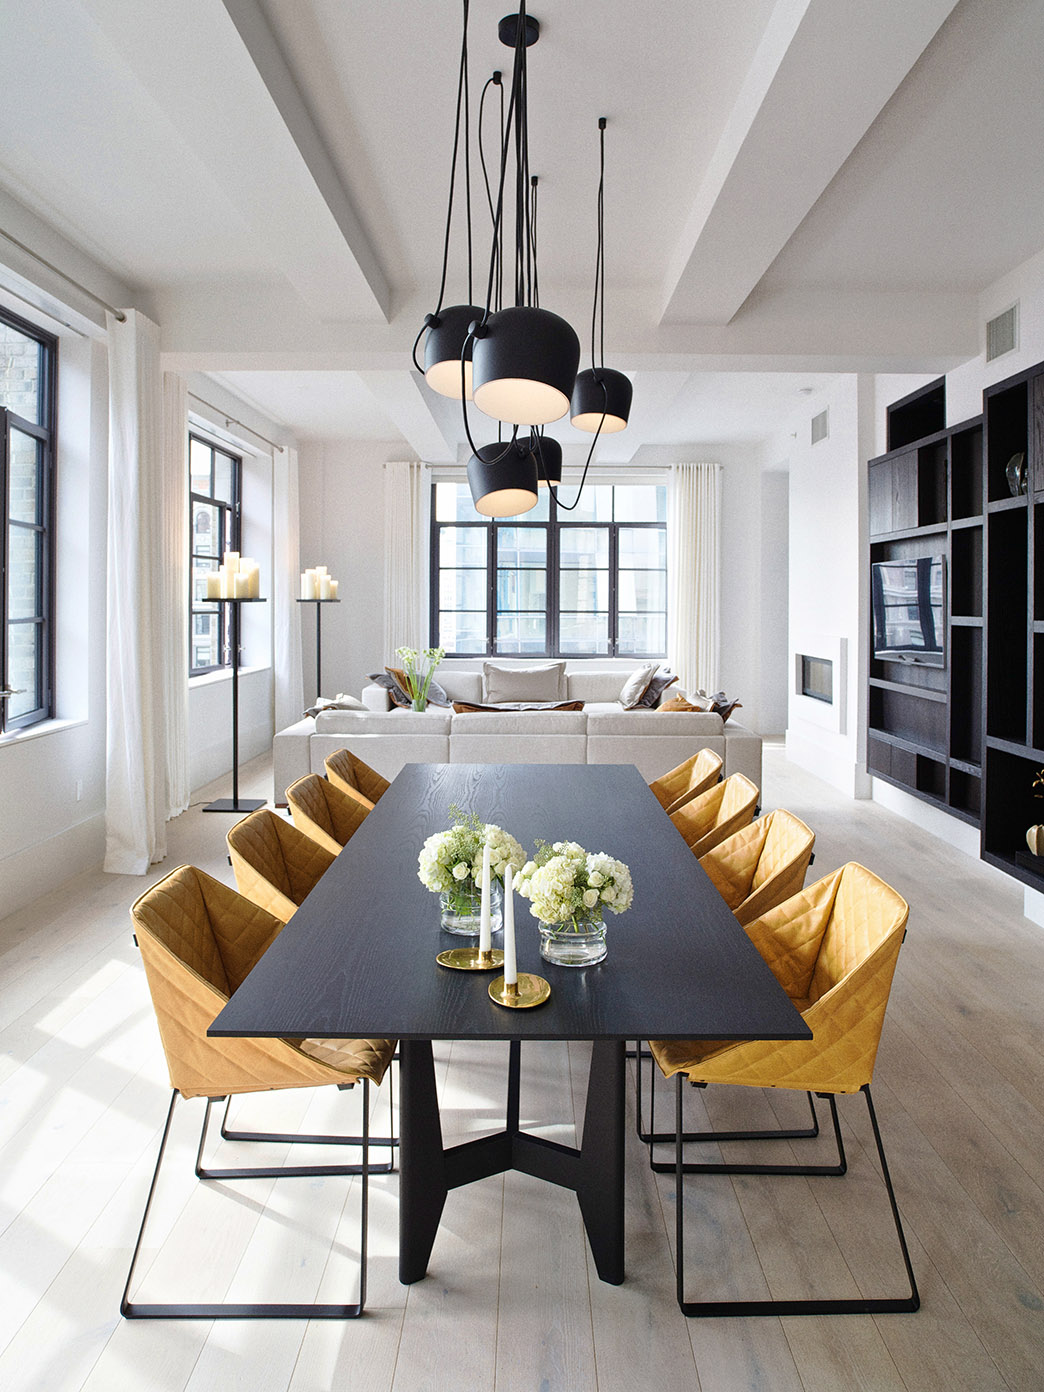 Luxury Condominiums Huys in New York City with YKE table, KEKKE dining chair and DON sofa